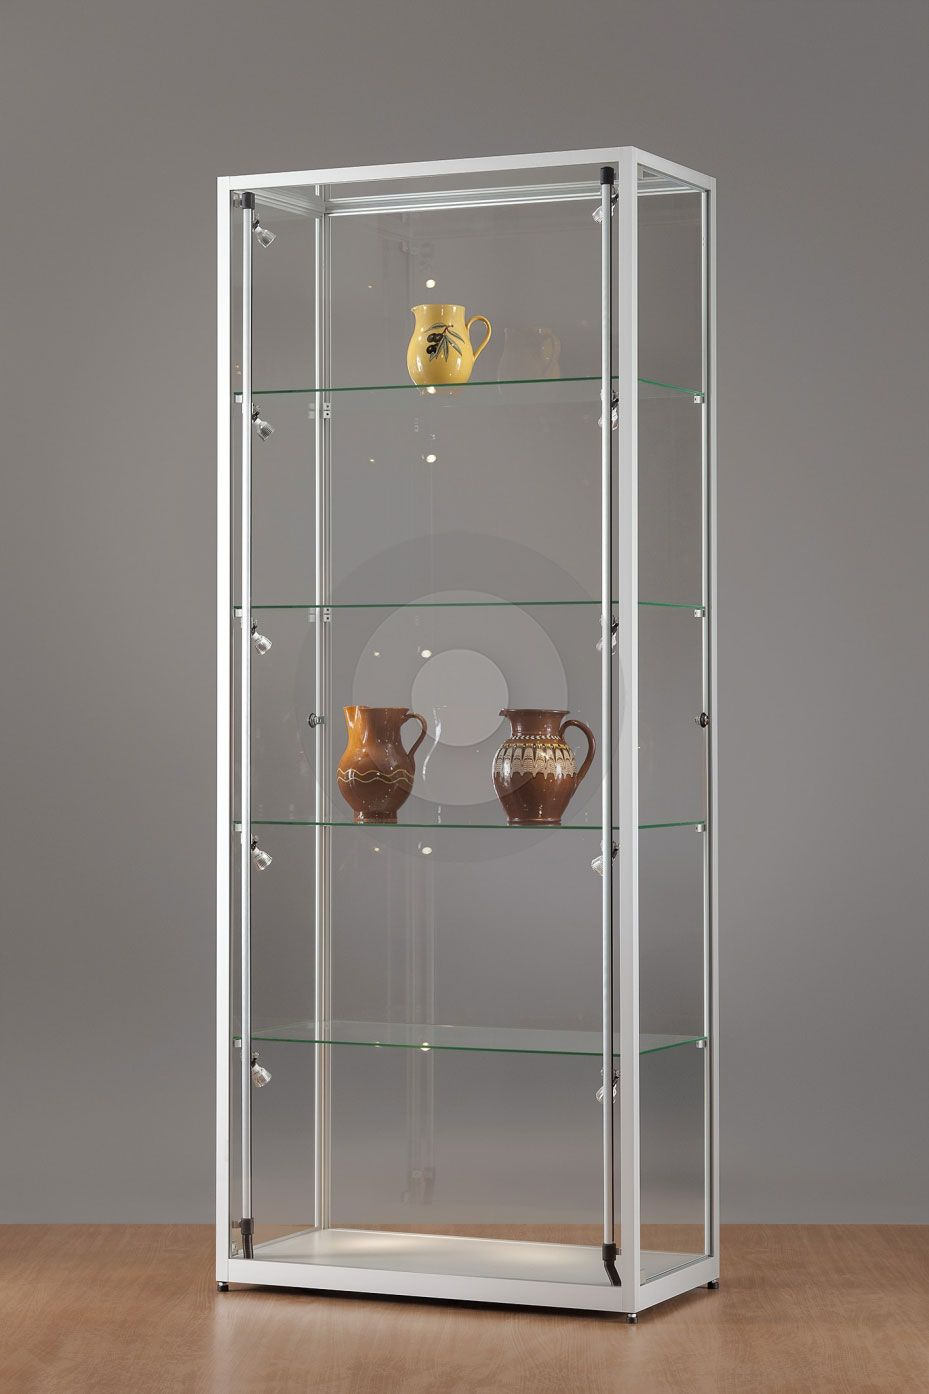 Eckvitrine Glas Display Cabinets Display Cabinets In 2019 Cabinet Glass